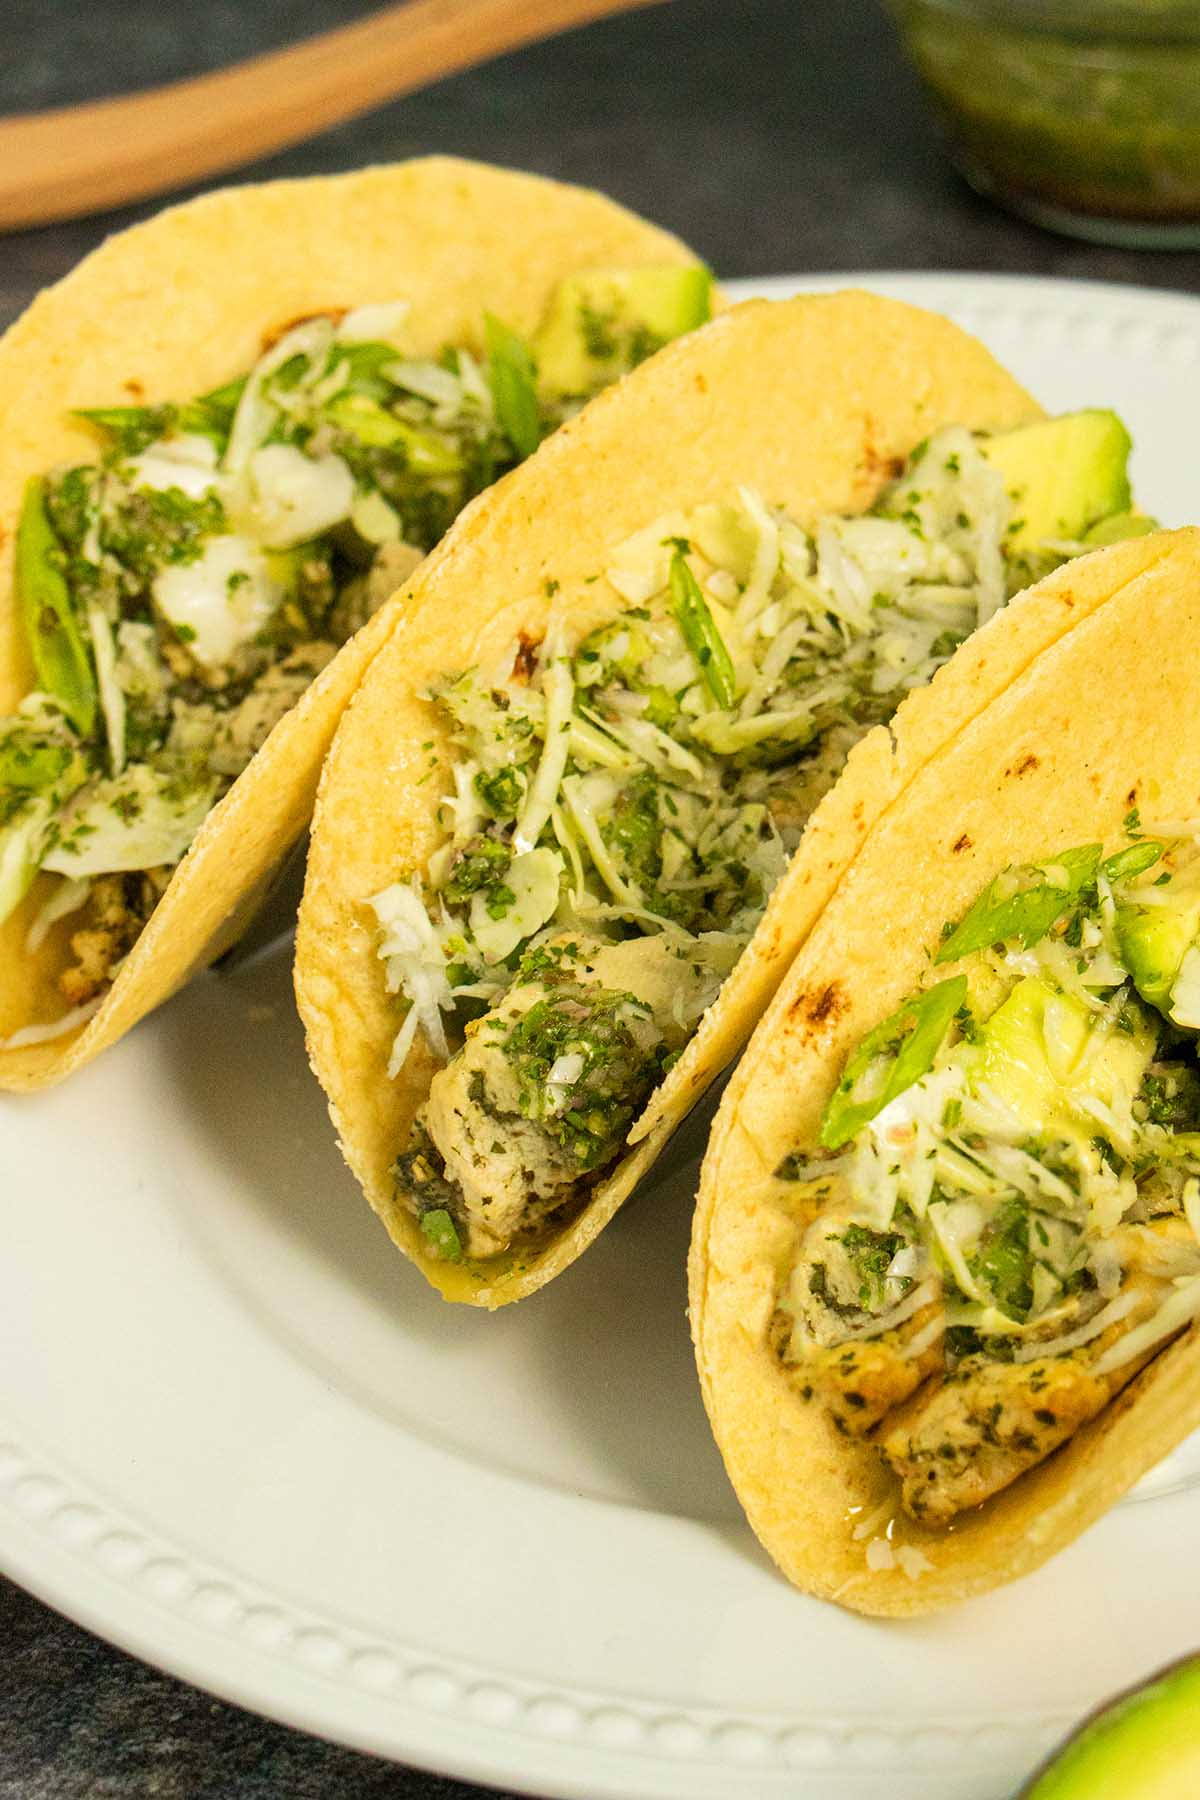 vegan tacos on a white plate with cabbage, avocado, and chimichurri sauce